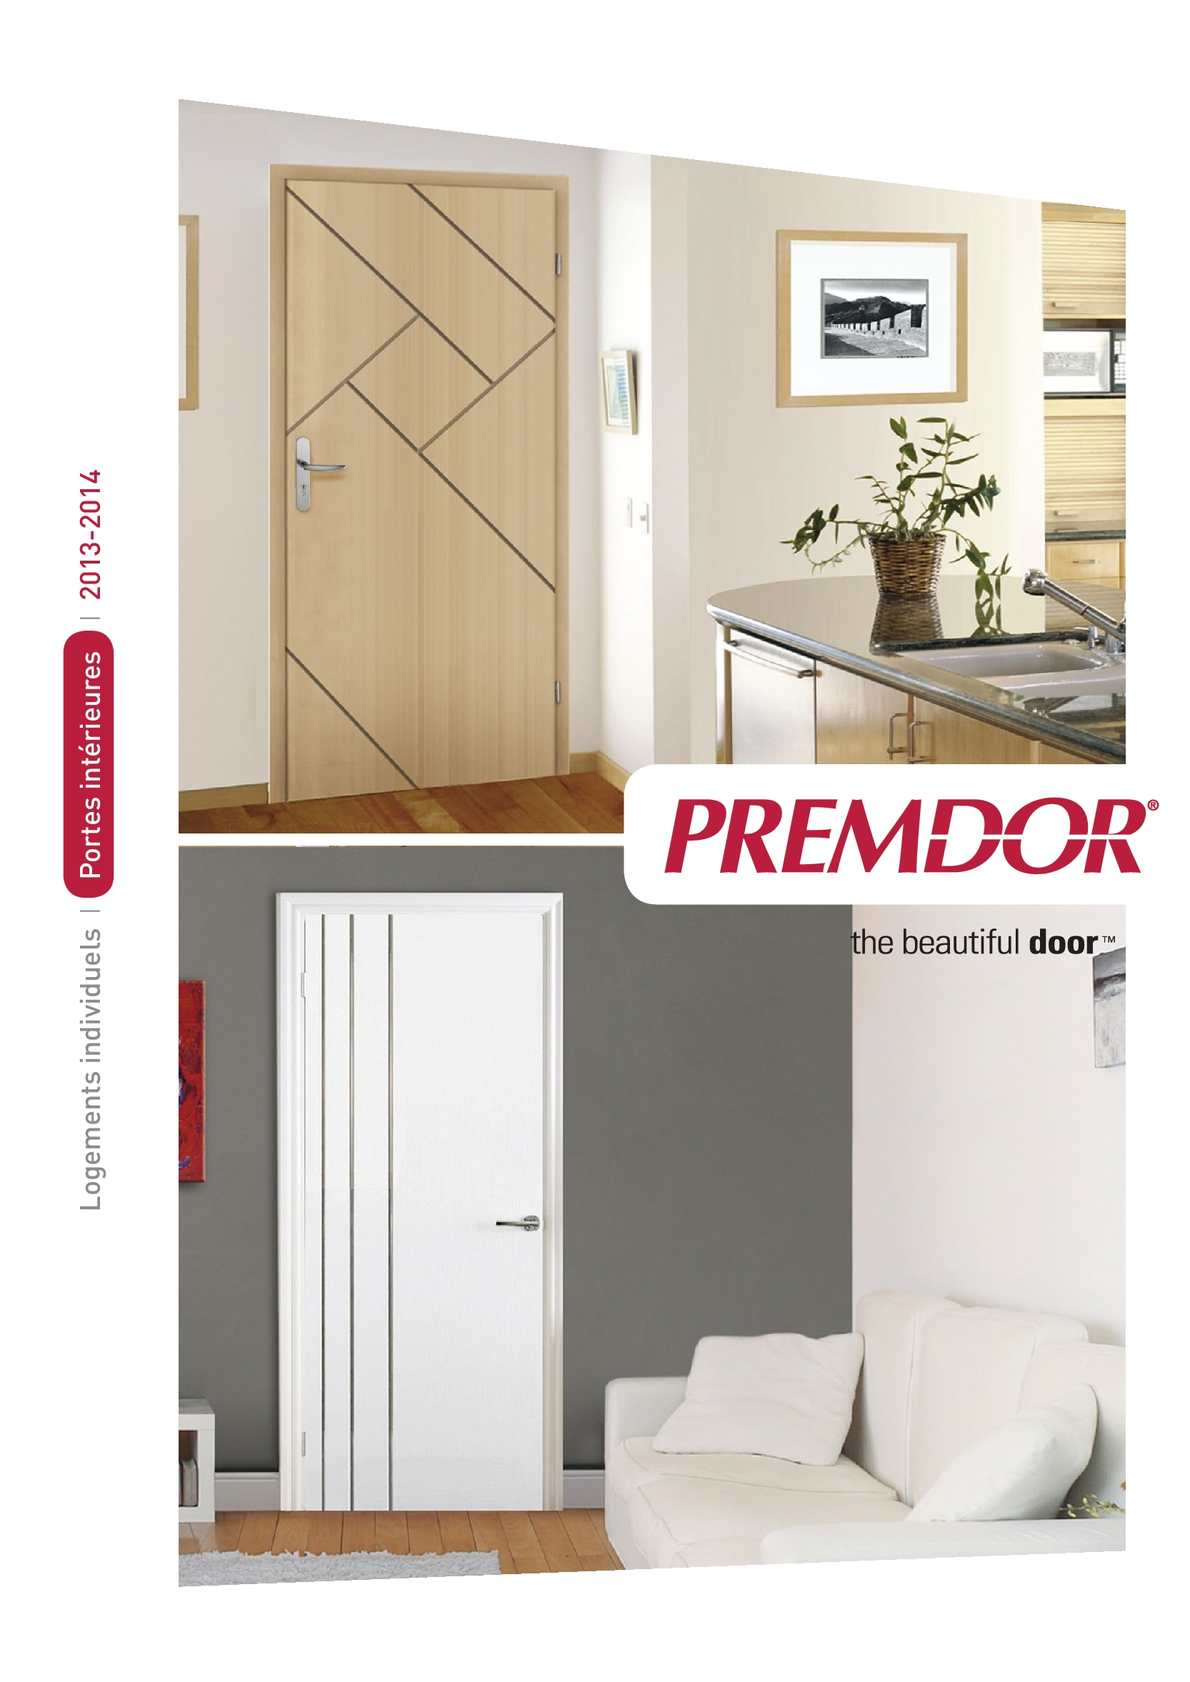 Calam o premdor porte d 39 interieur for Portes interieures design